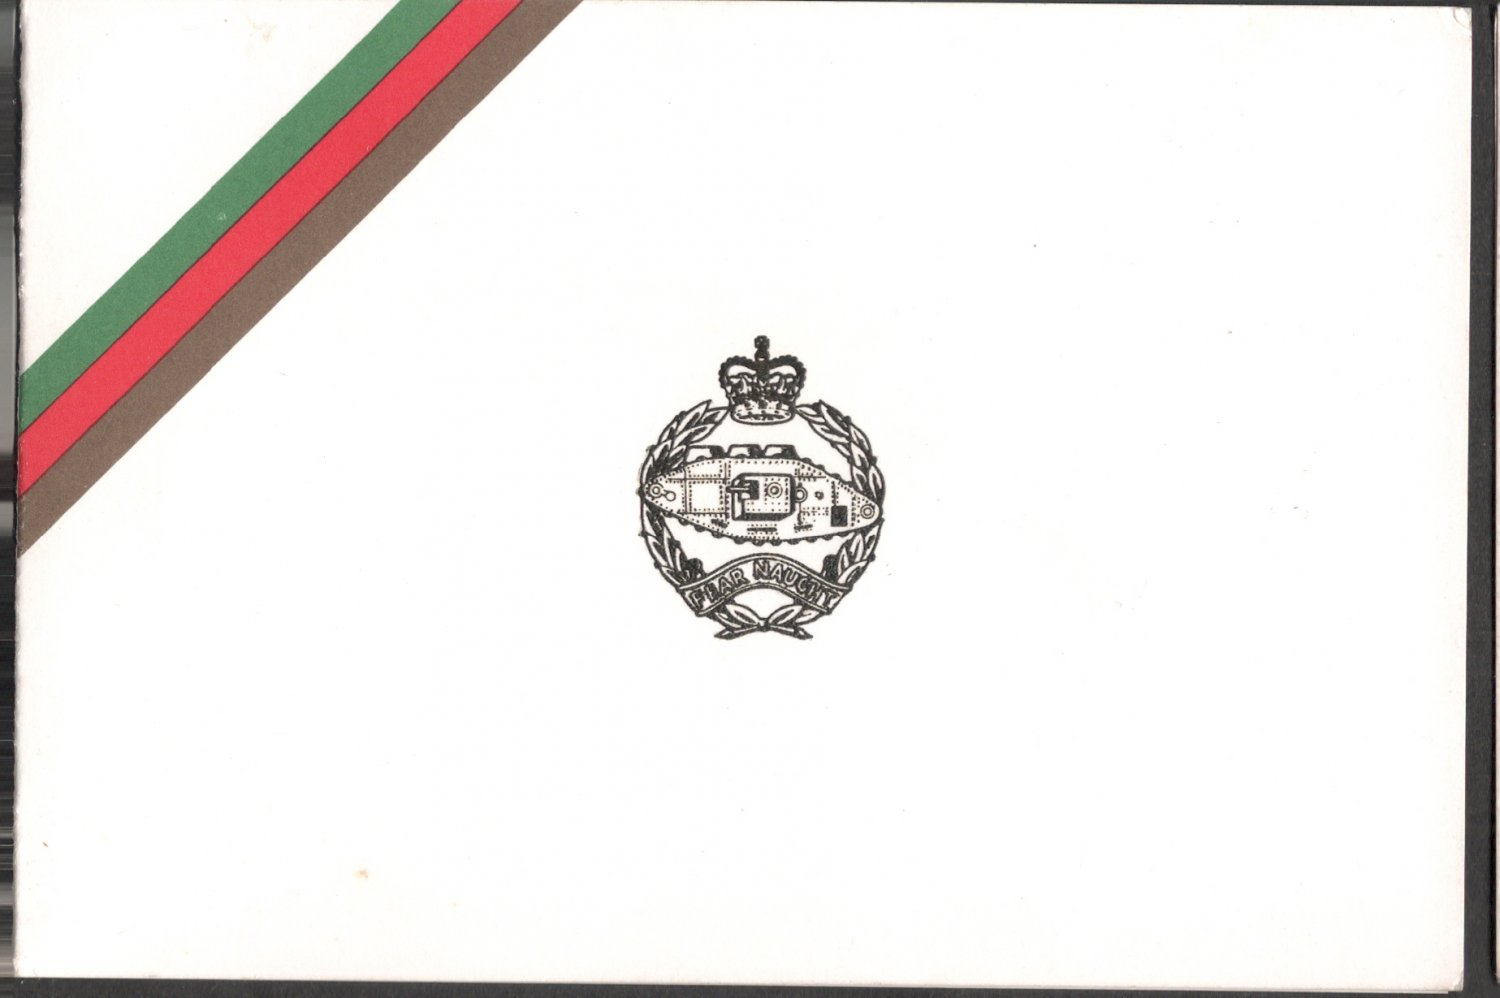 ROYAL TANK REGIMENT BENEVOLENT FUND CHRISTMAS GREETINGS  USED GREETING CARD RARE VINTAGE